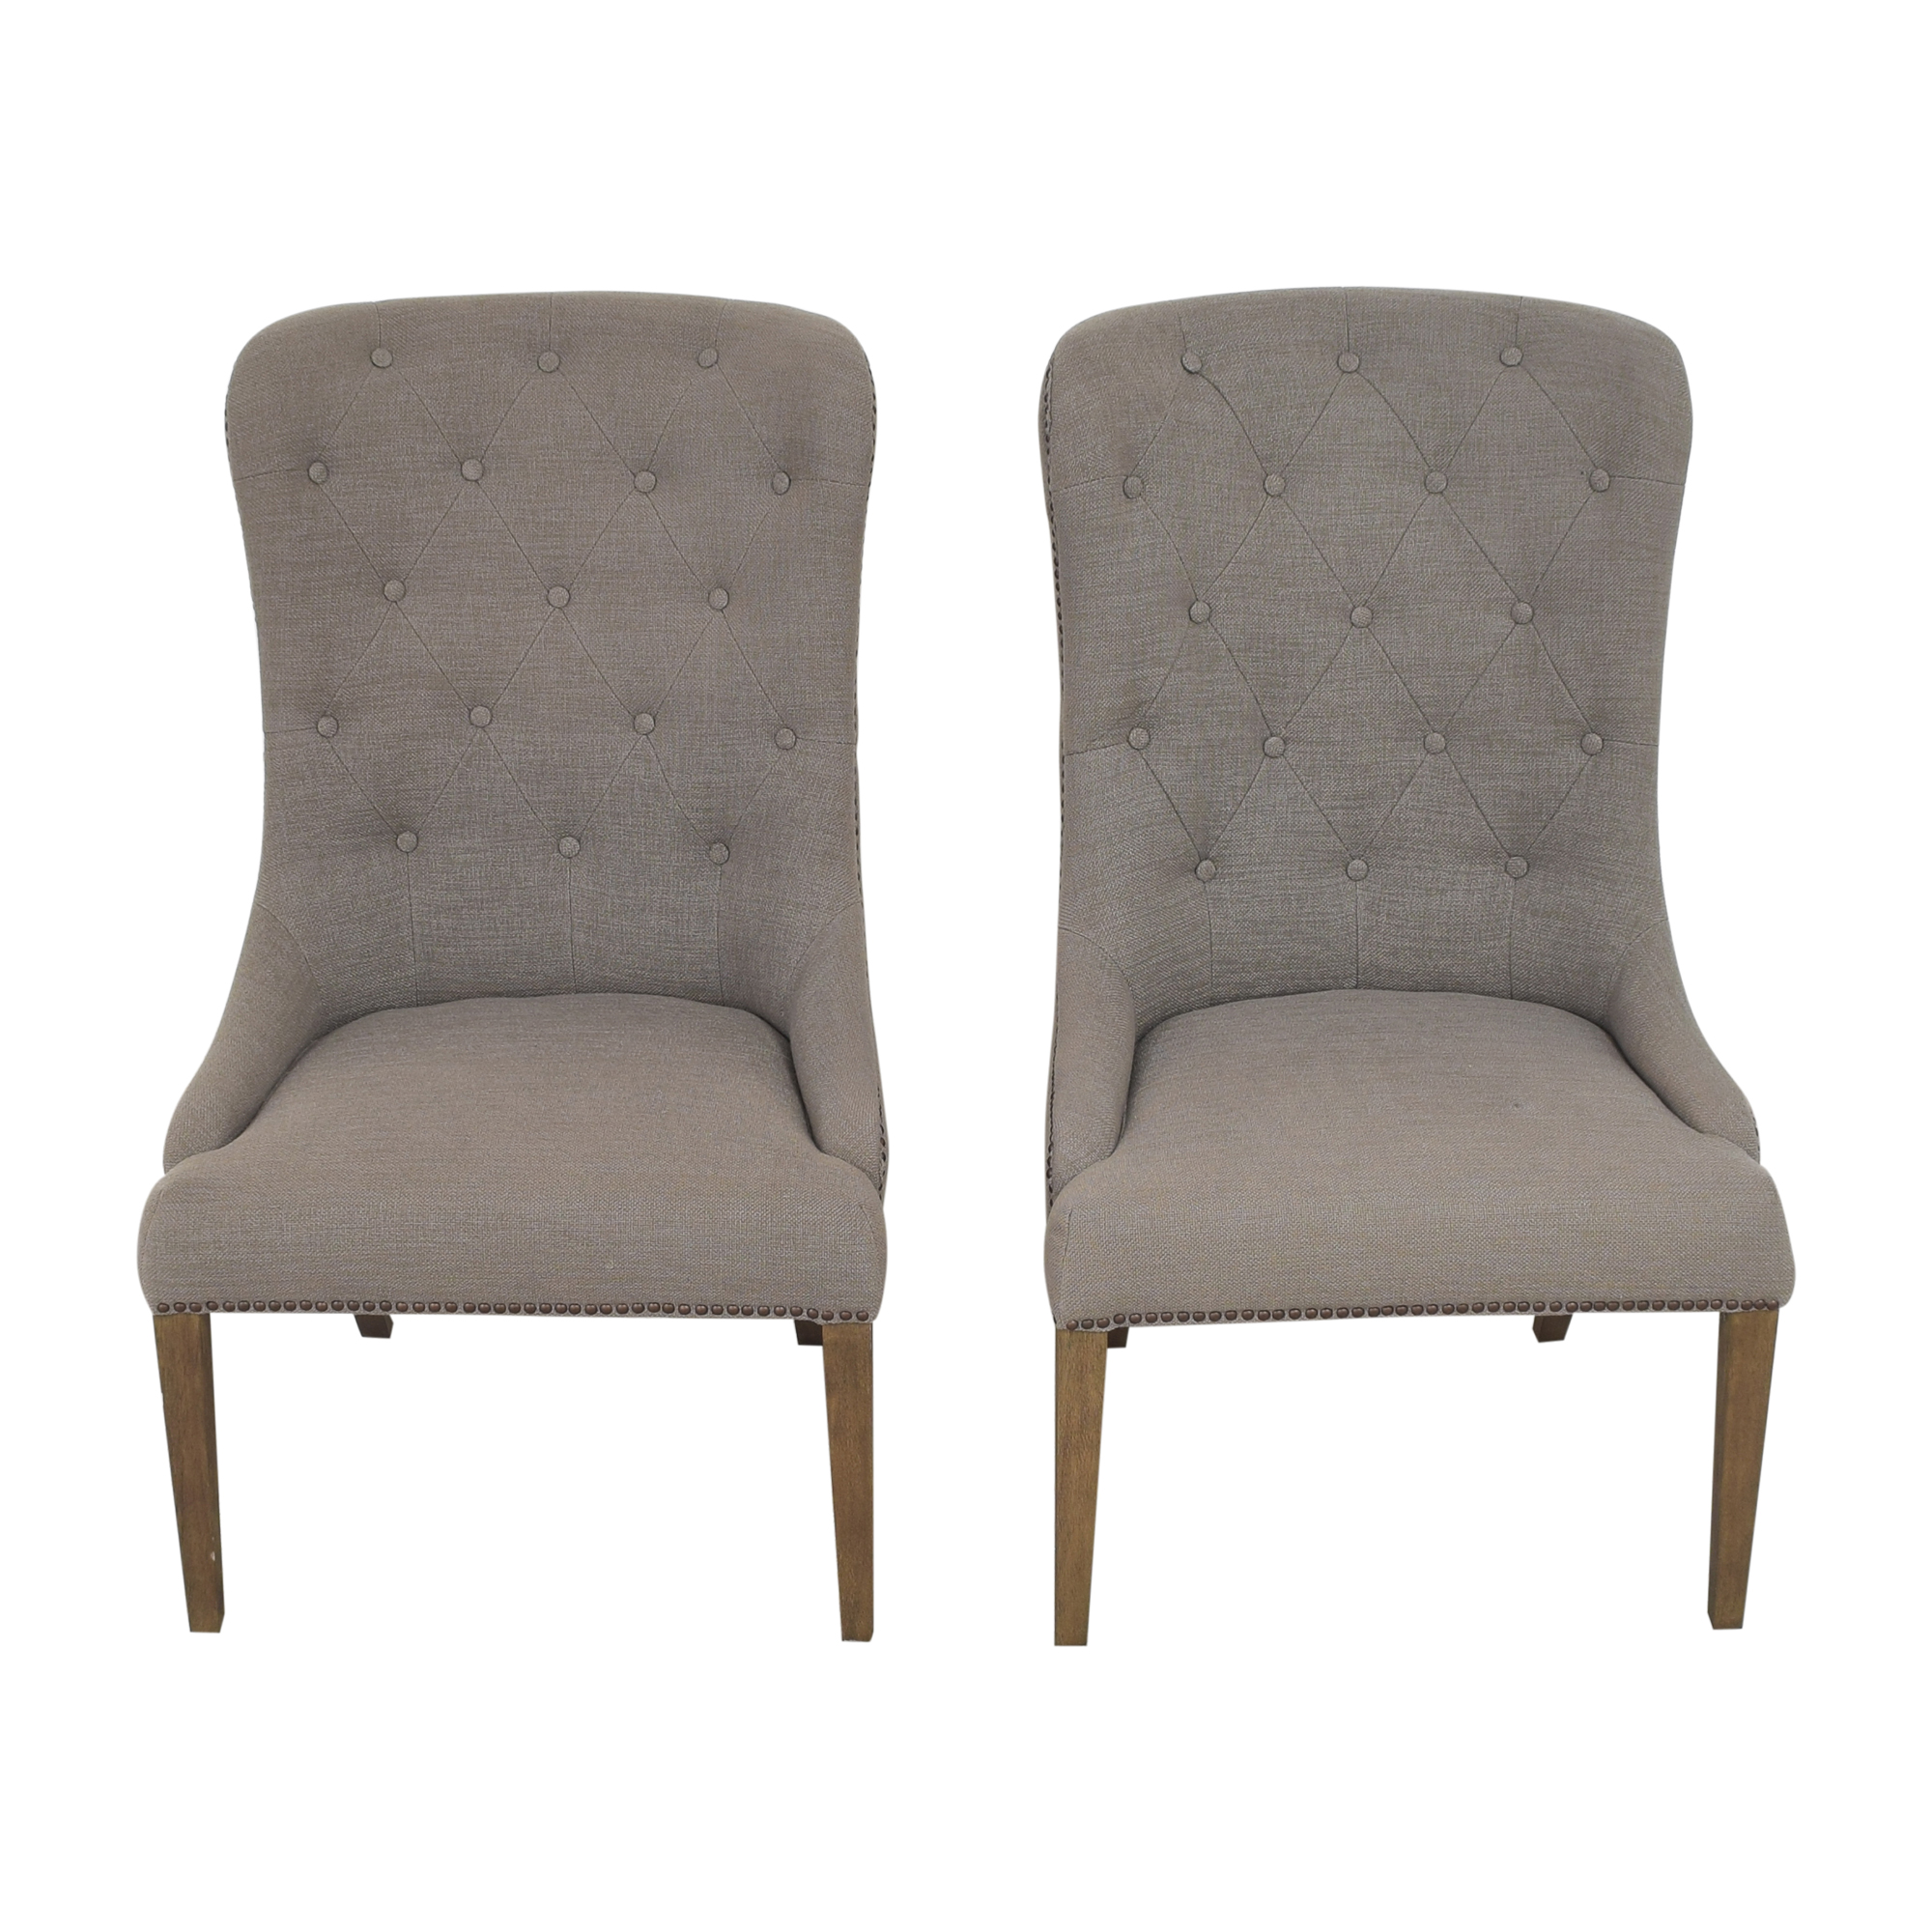 Four Hands Four Hands Elouise Dining Chairs Gray